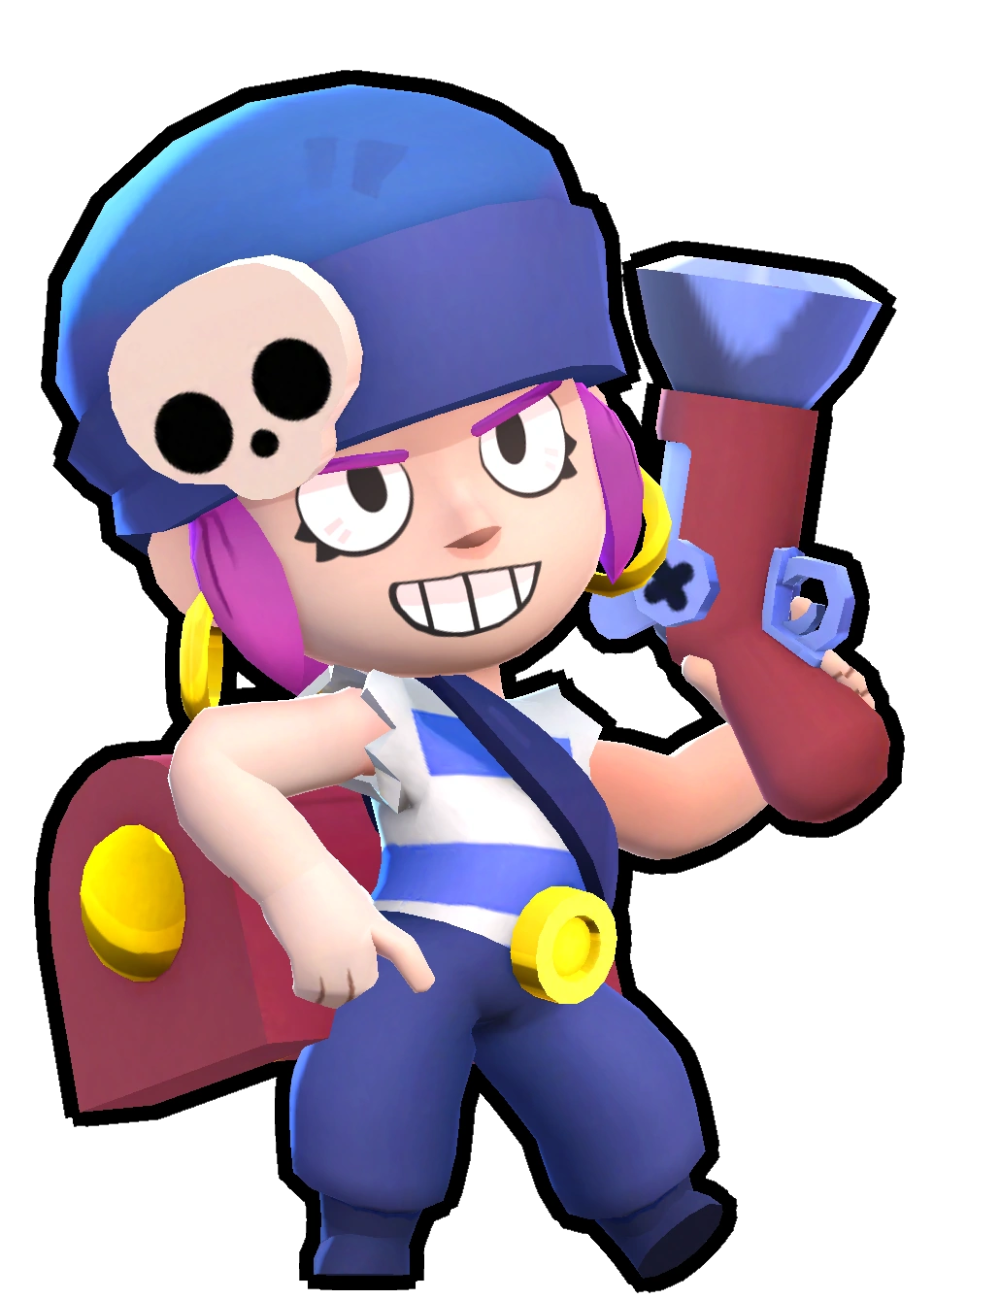 Penny Is A Super Rare Brawler Who Has Medium Health And Her Long Range Attack Can Hit Enemies Behind The Original Ta Brawl Star Character Game Character Design